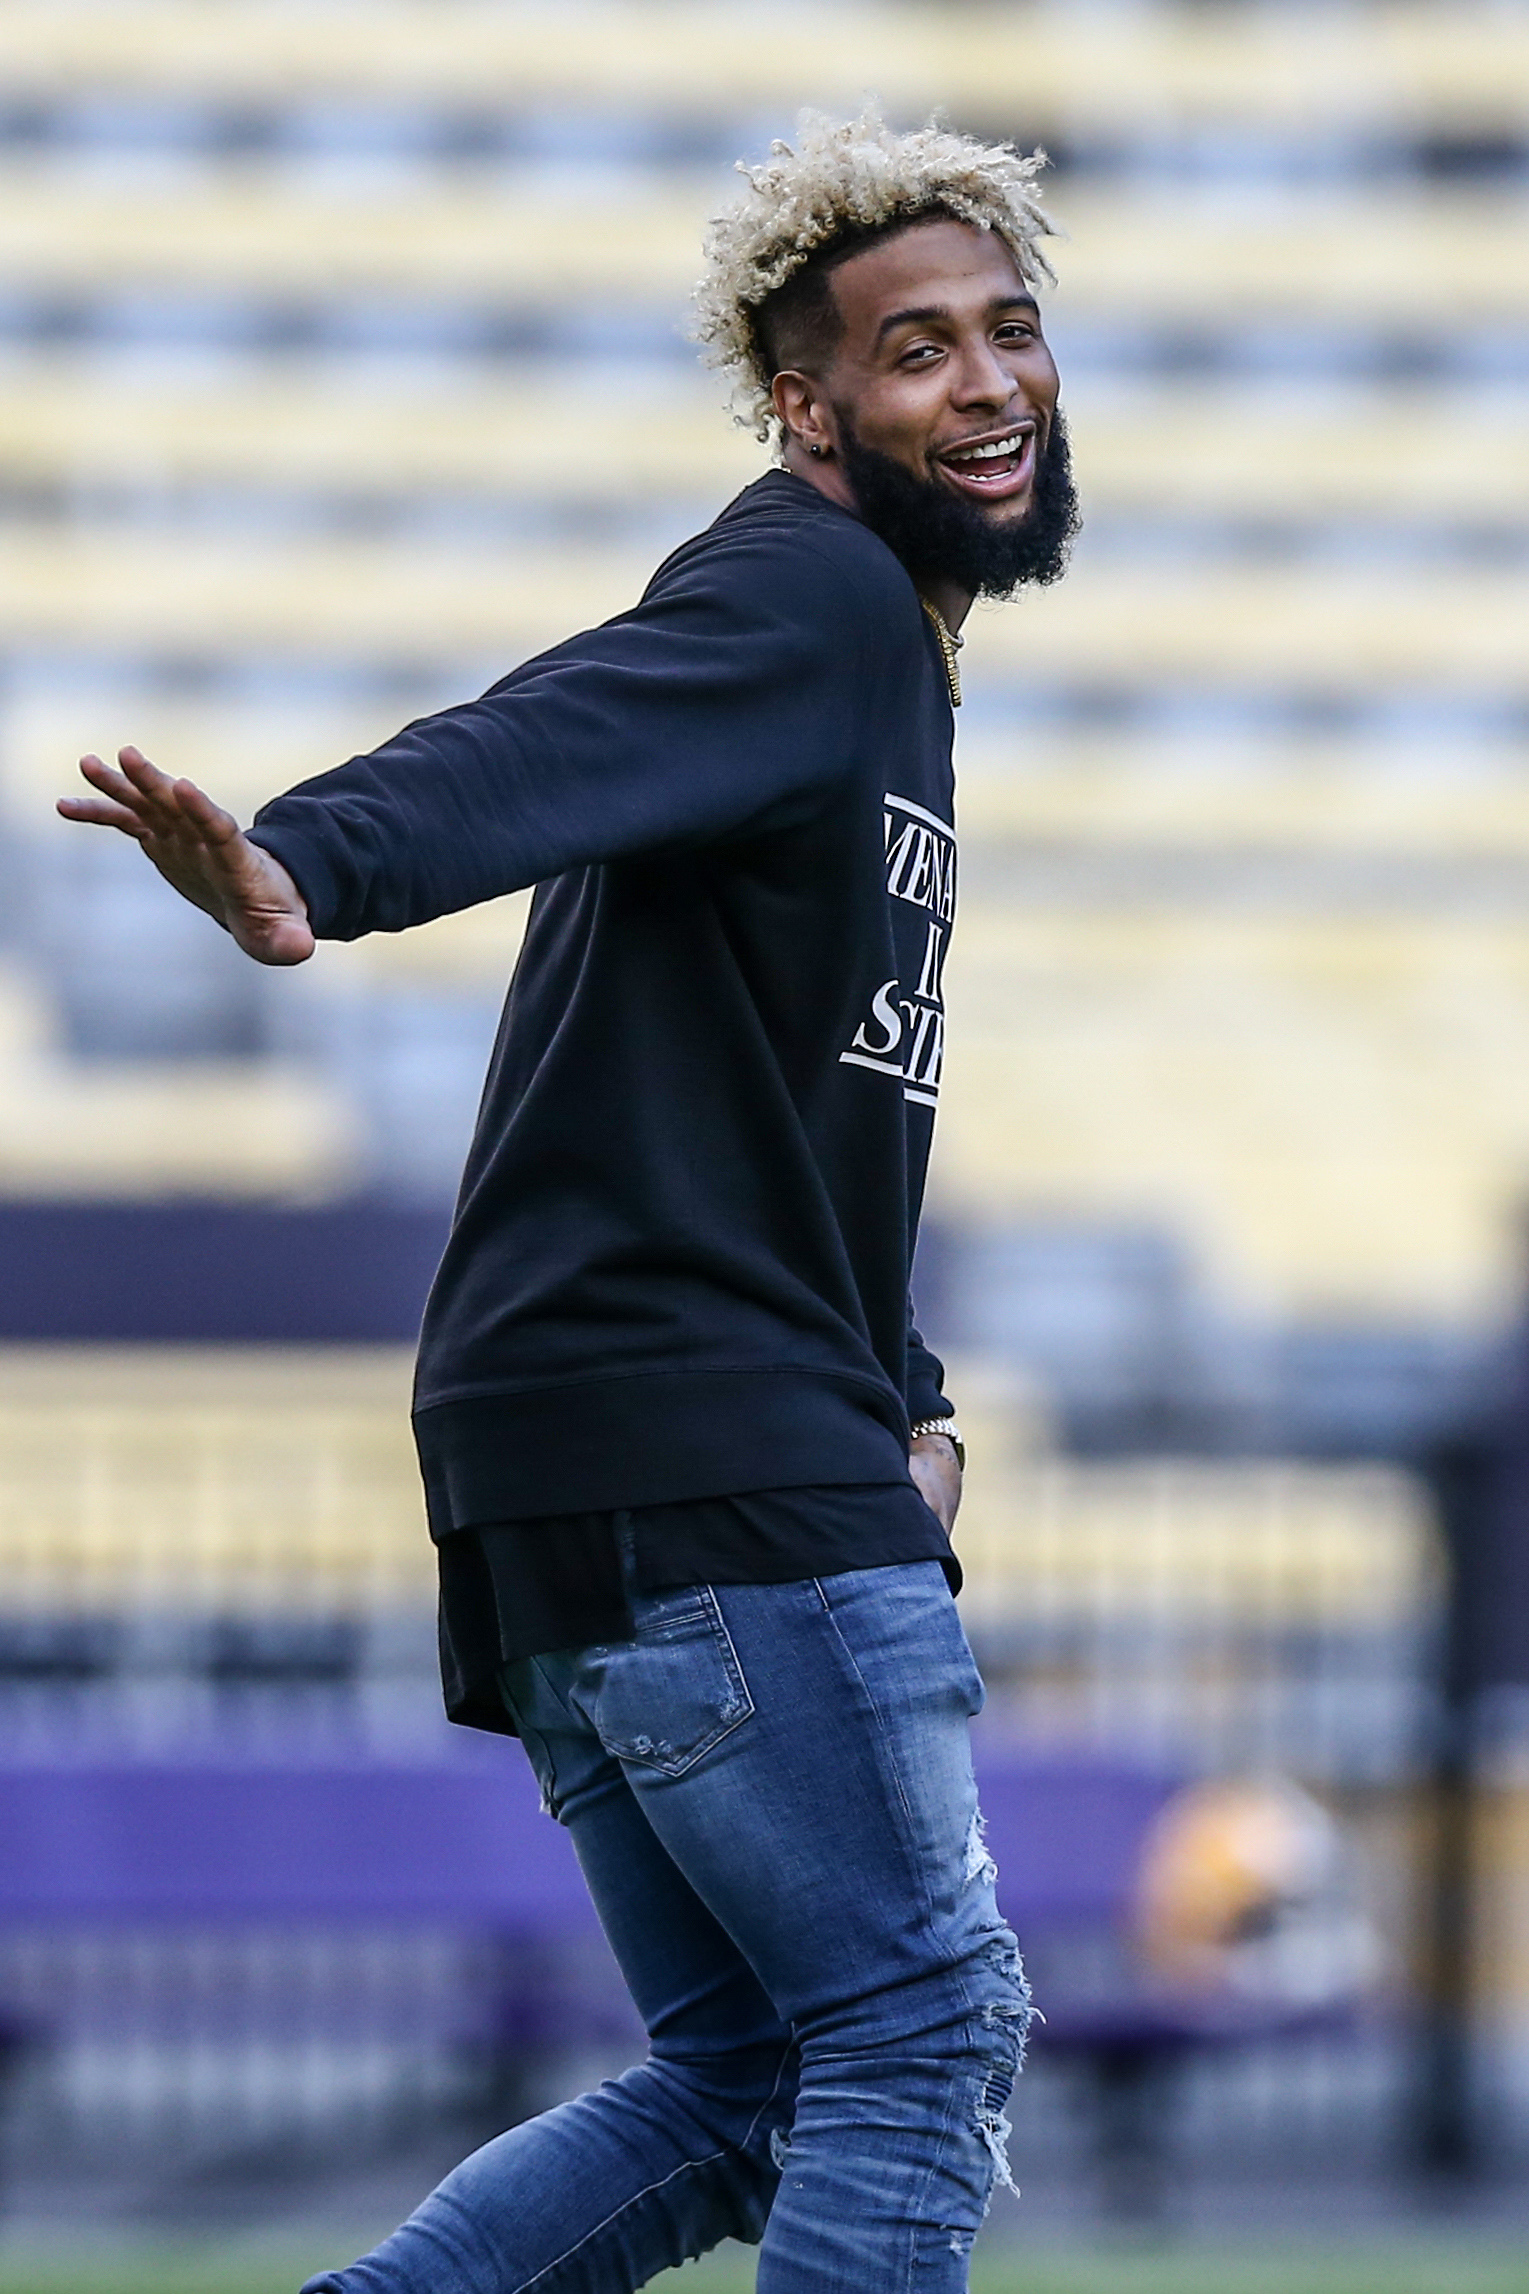 odell beckham jr - photo #18